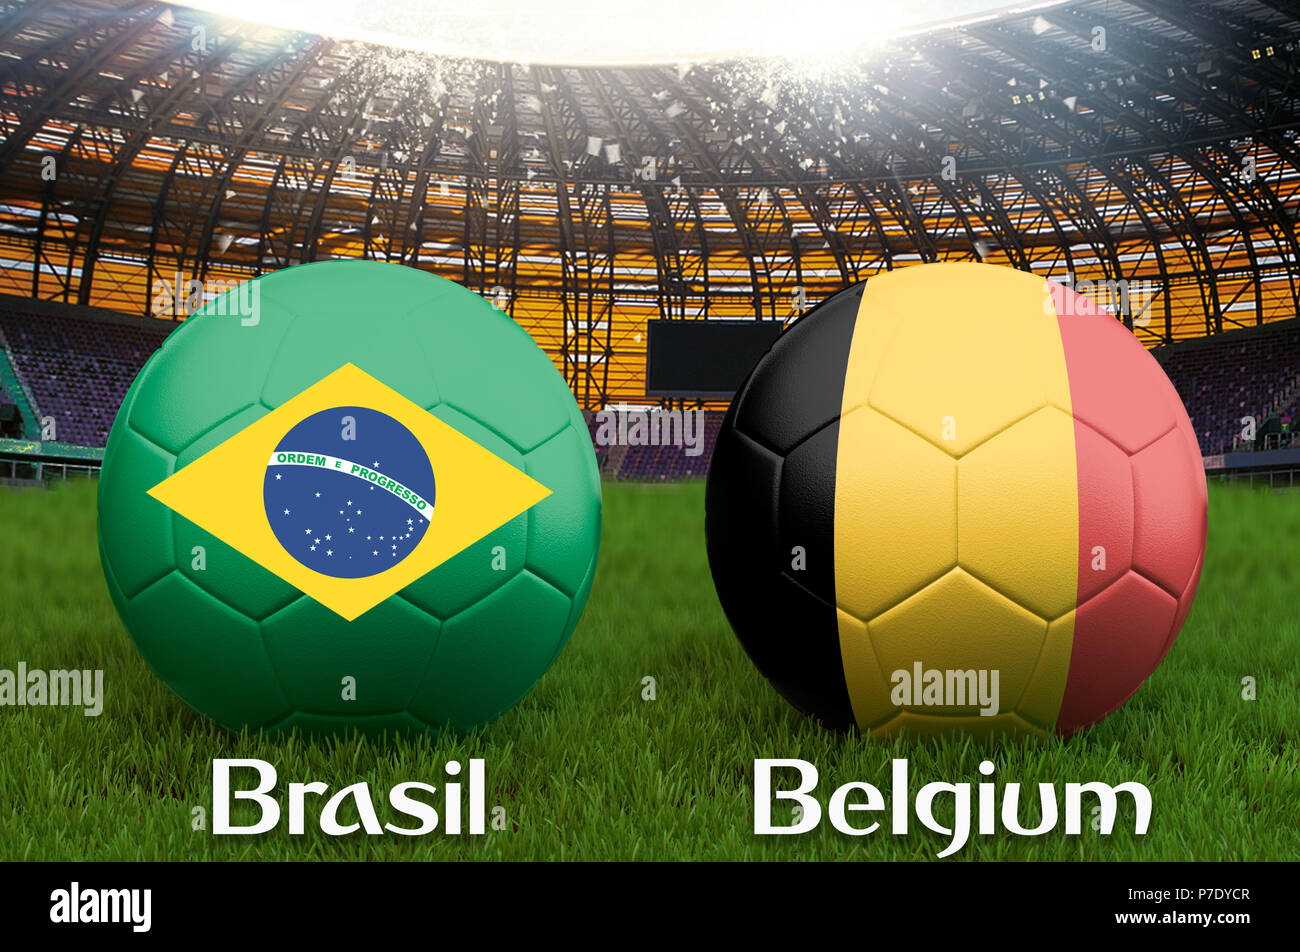 06f17f94c Brazil vs Belgium football team ball on big stadium background. Brazil vs  Belgium Team competition